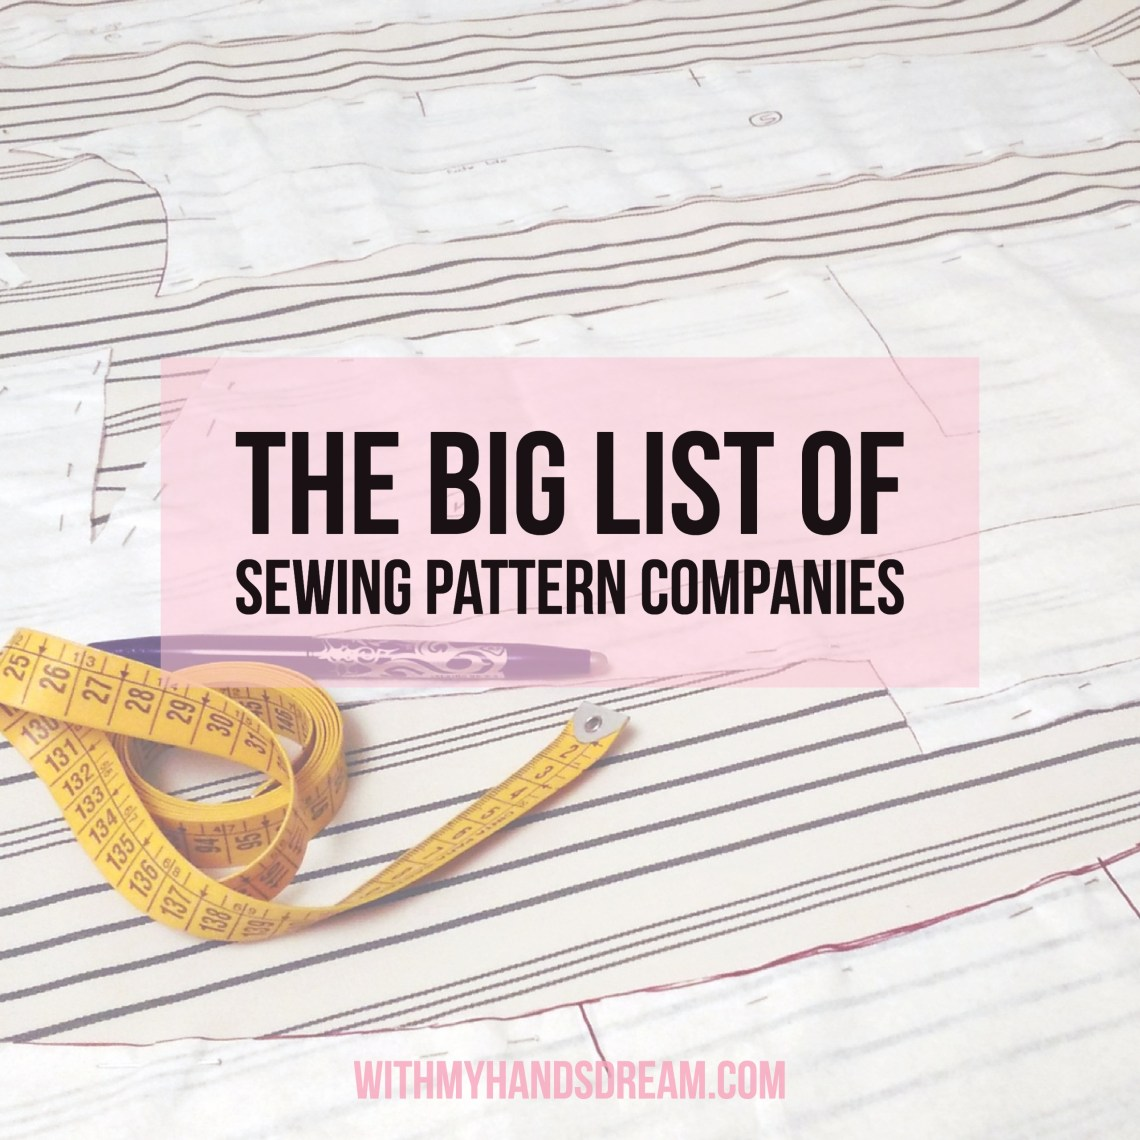 The Big List of Sewing Patterns Companies